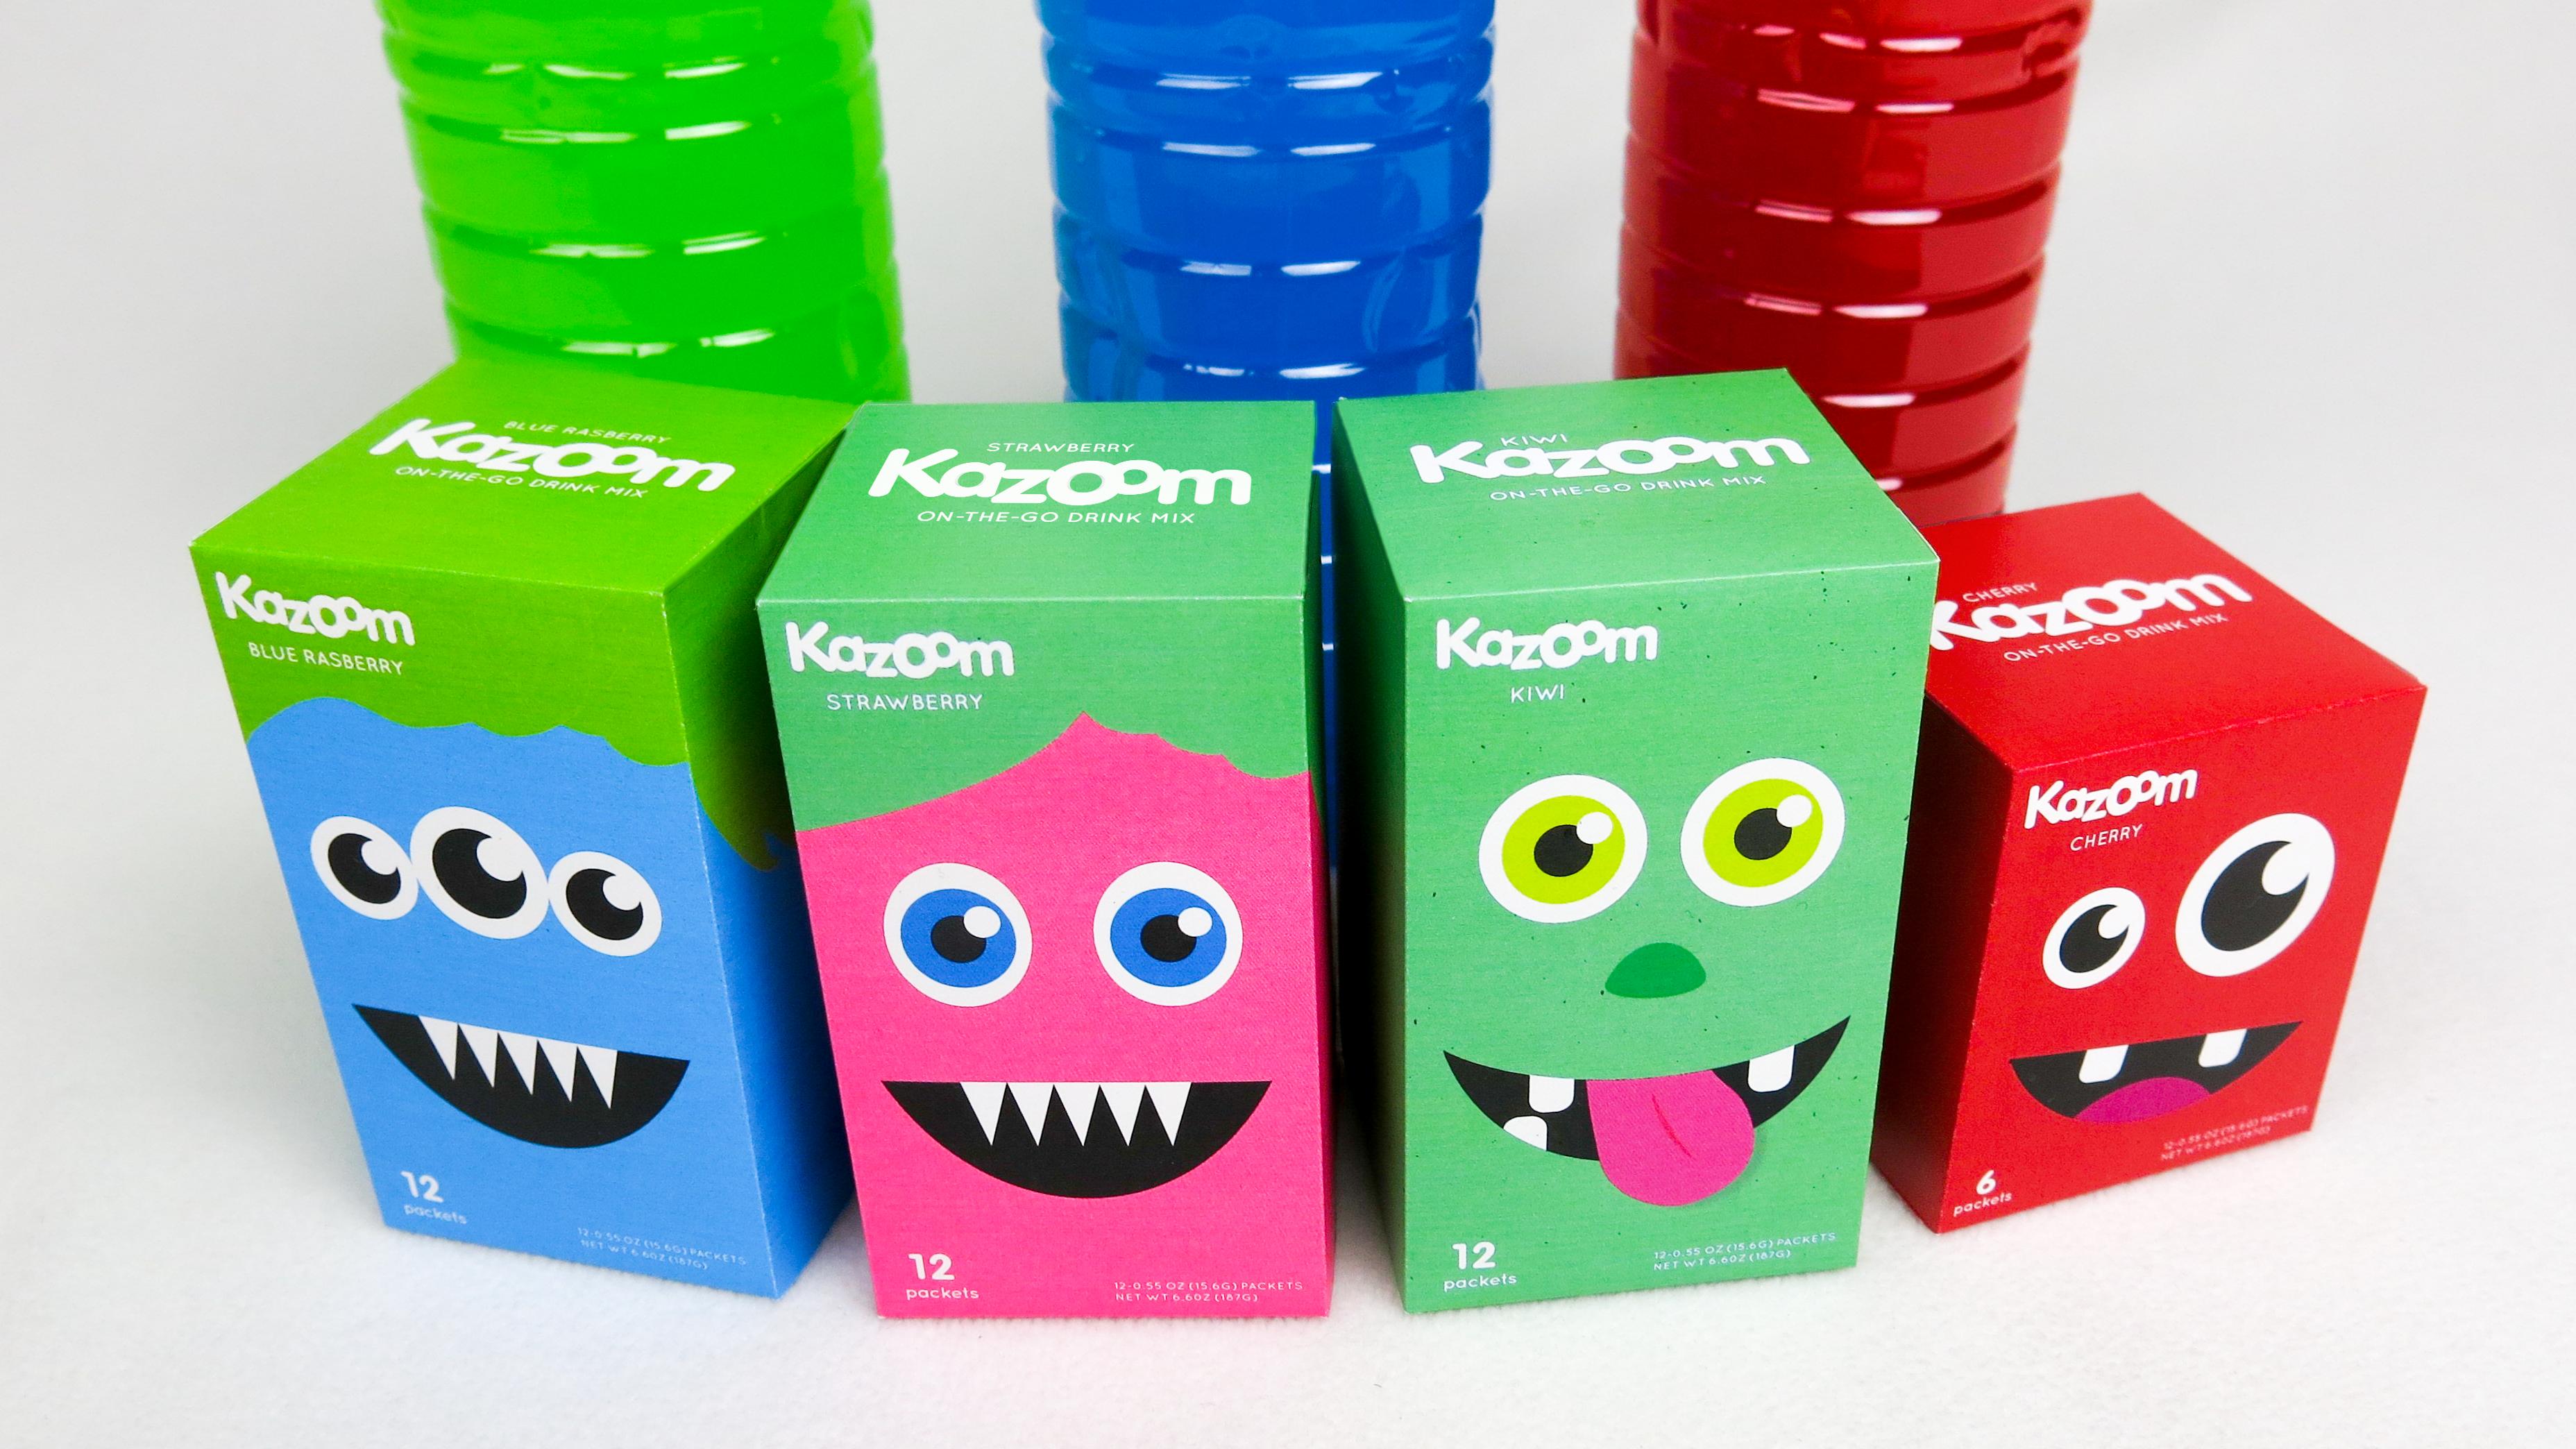 Kazoom Drink Mixes